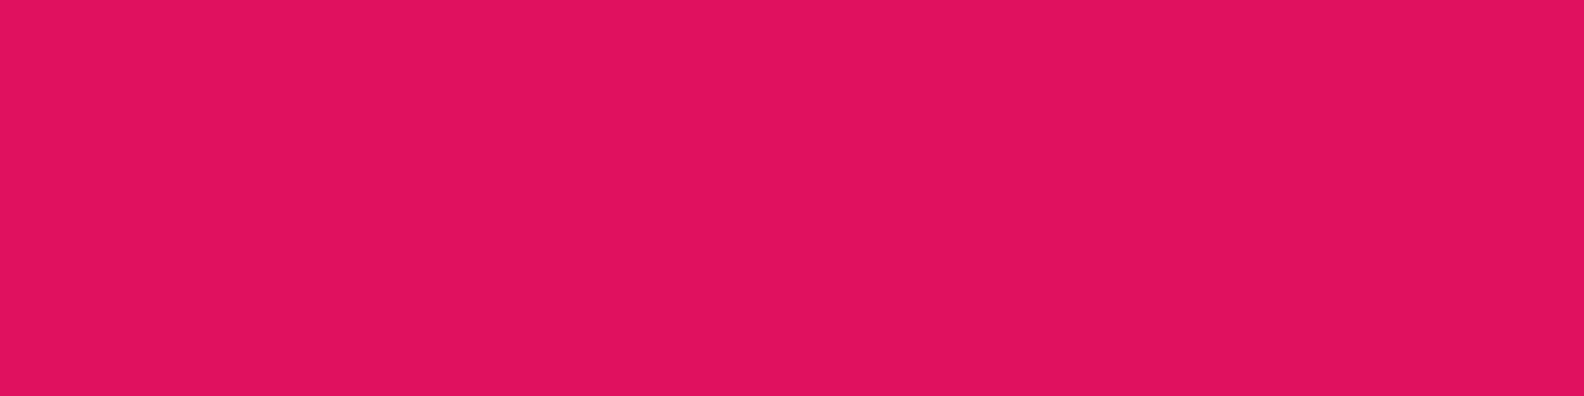 1584x396 Ruby Solid Color Background